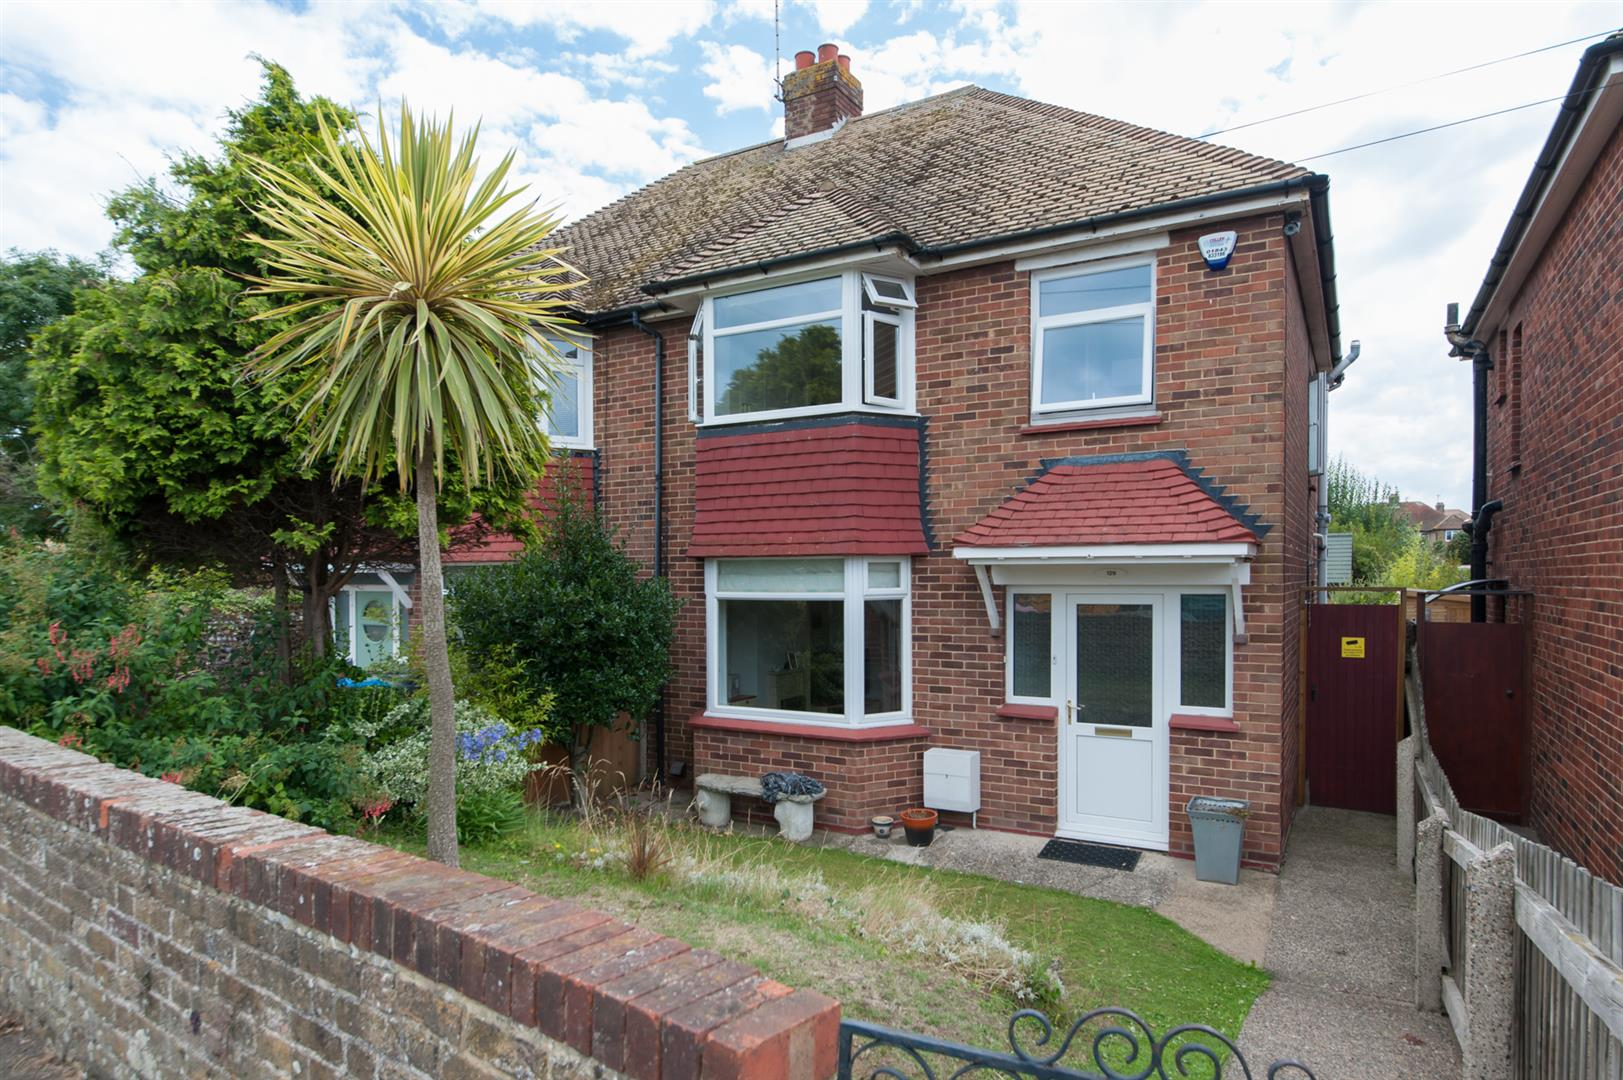 3 Bedrooms House for sale in Westbrook Avenue, MARGATE